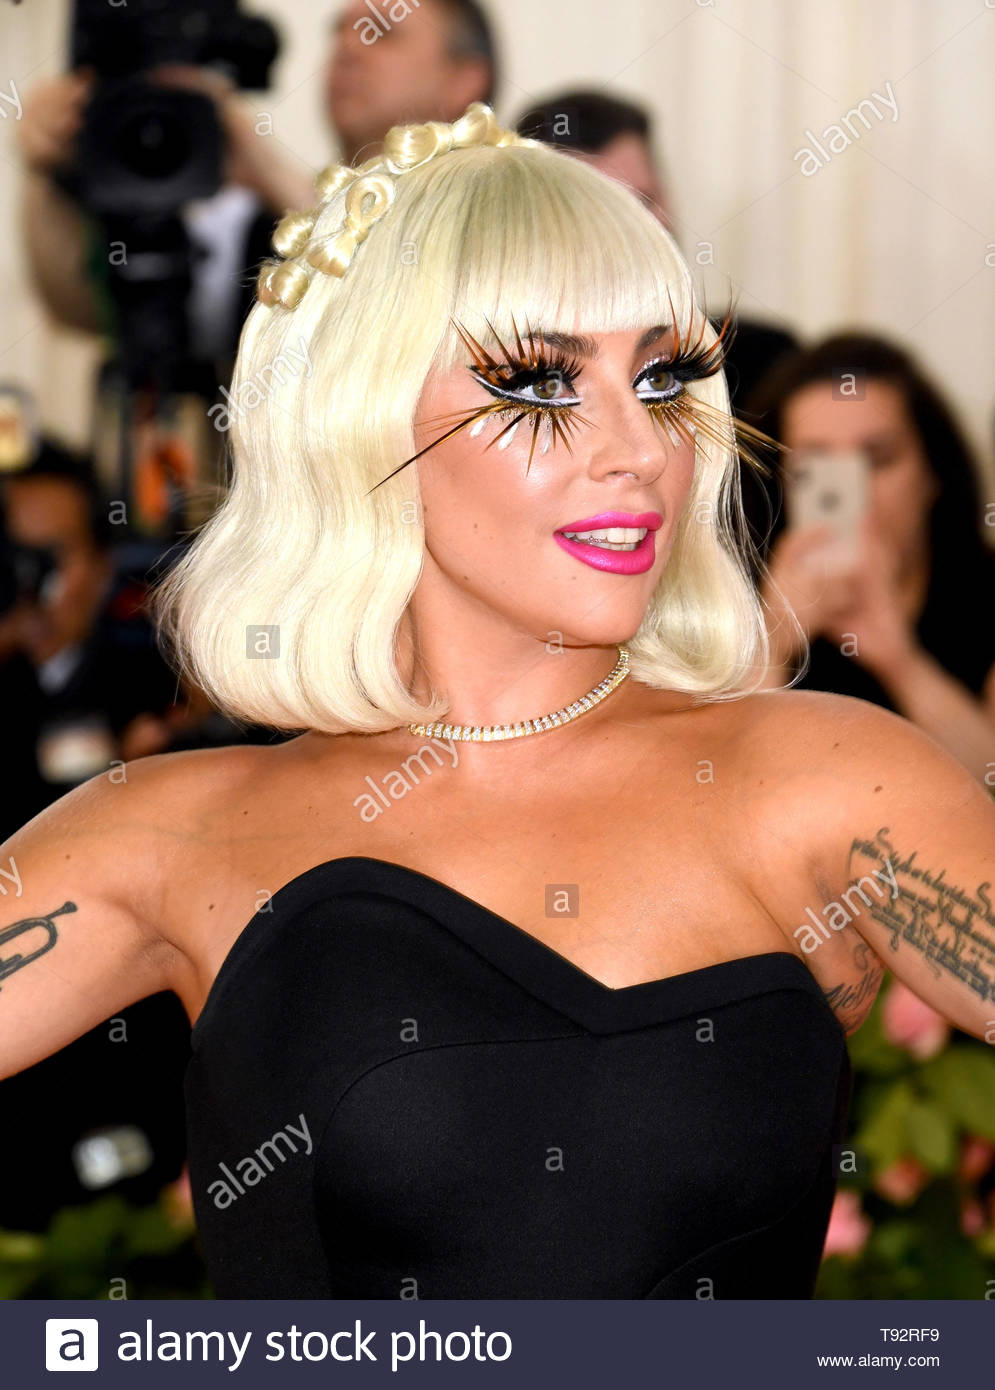 Who has lady gaga dated